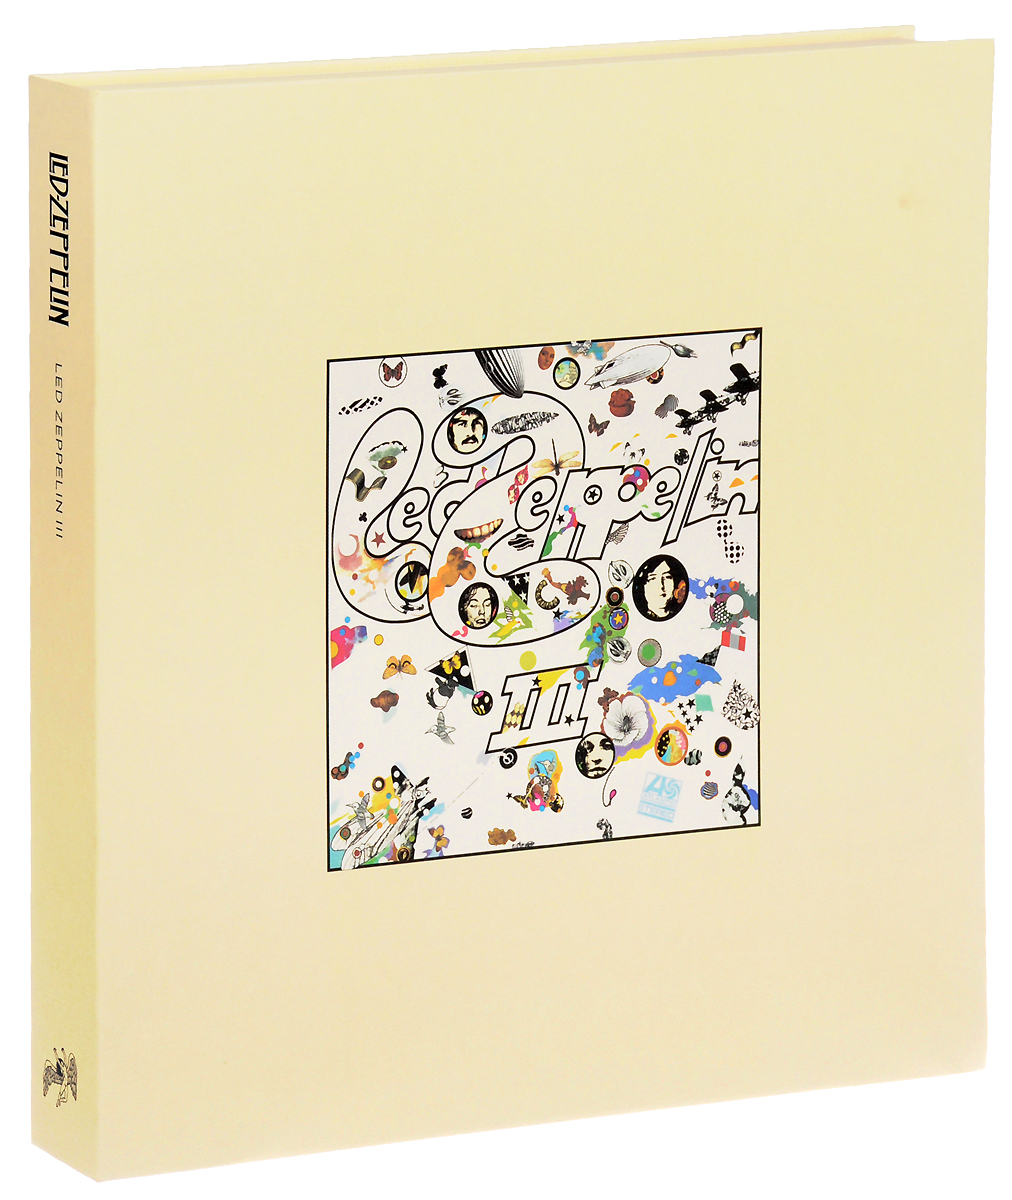 цена на Led Zeppelin Led Zeppelin. Led Zeppelin III. Super Deluxe Edition (2 LP + 2 CD)